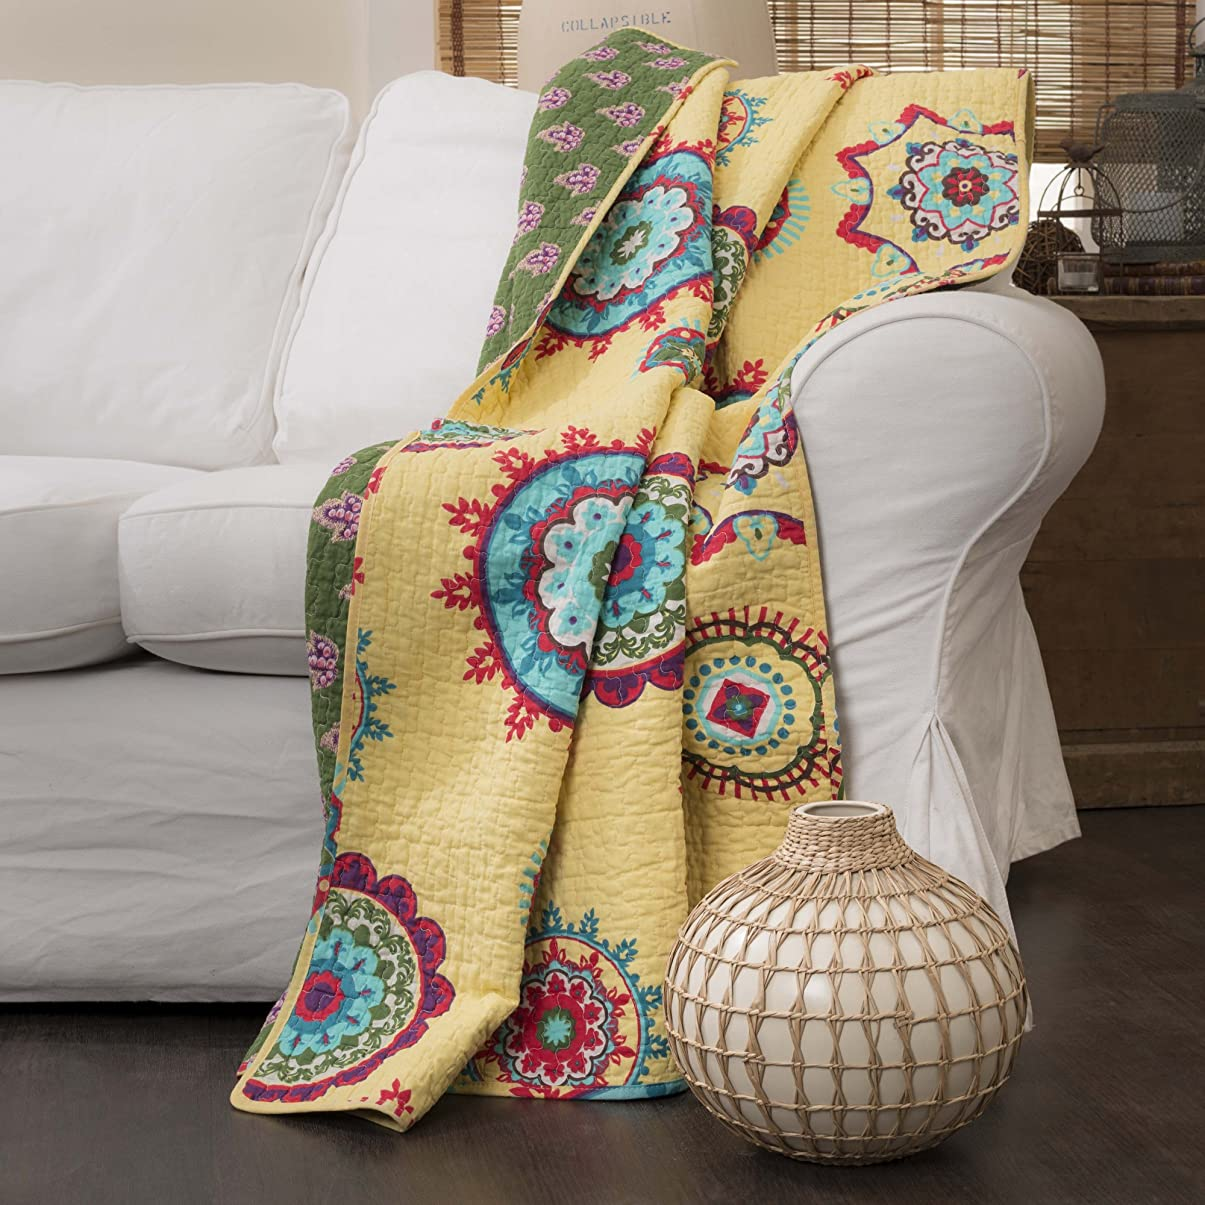 $30 for Quilted Throw by Lush Decor